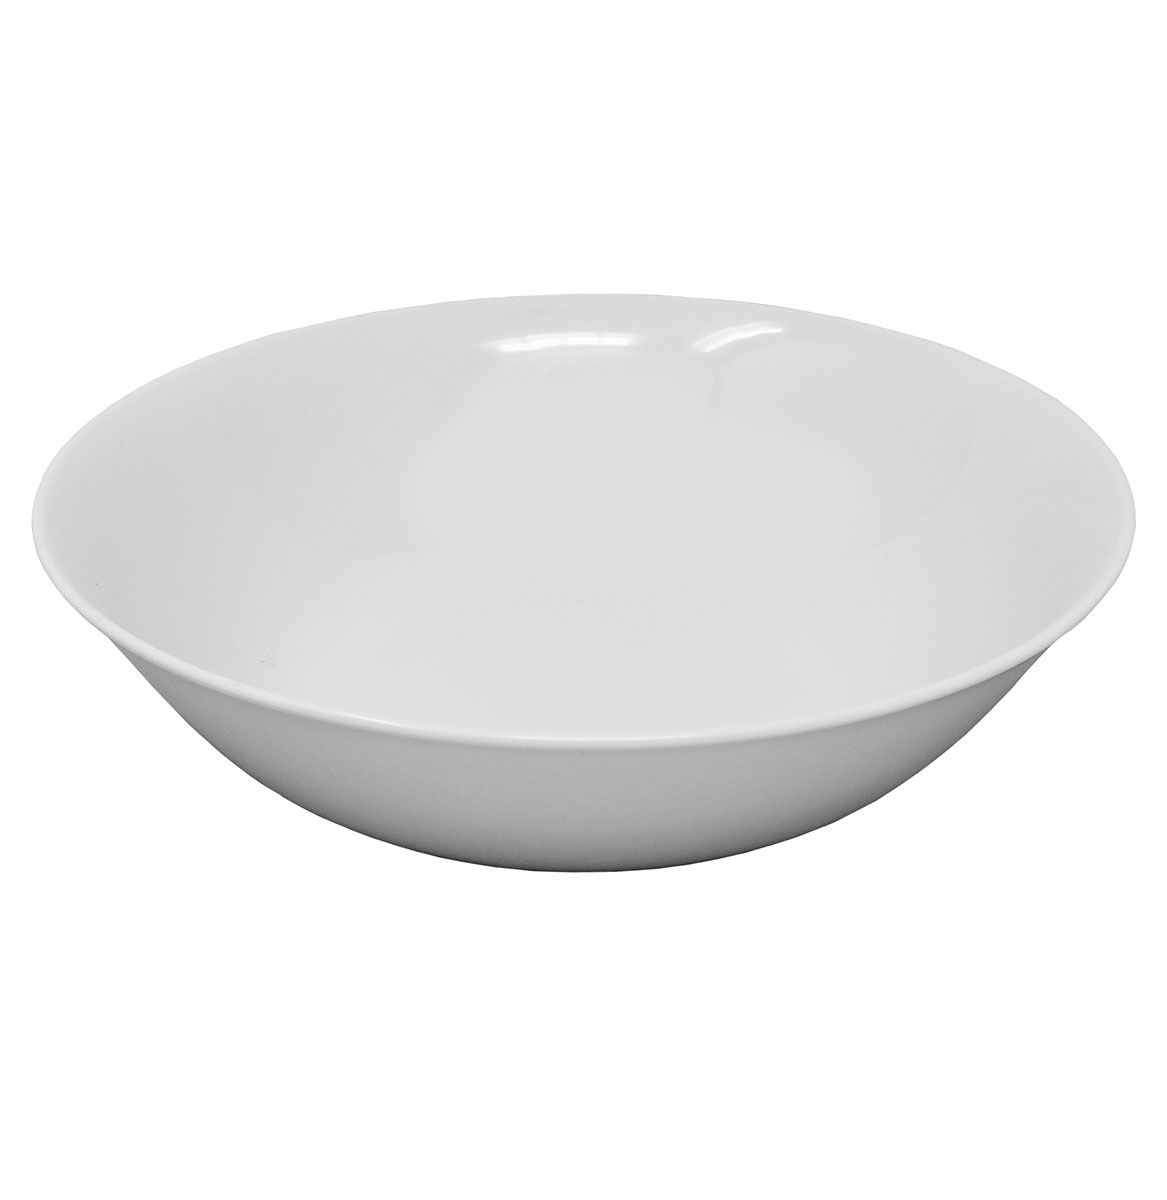 Serving Bowl White 36oz